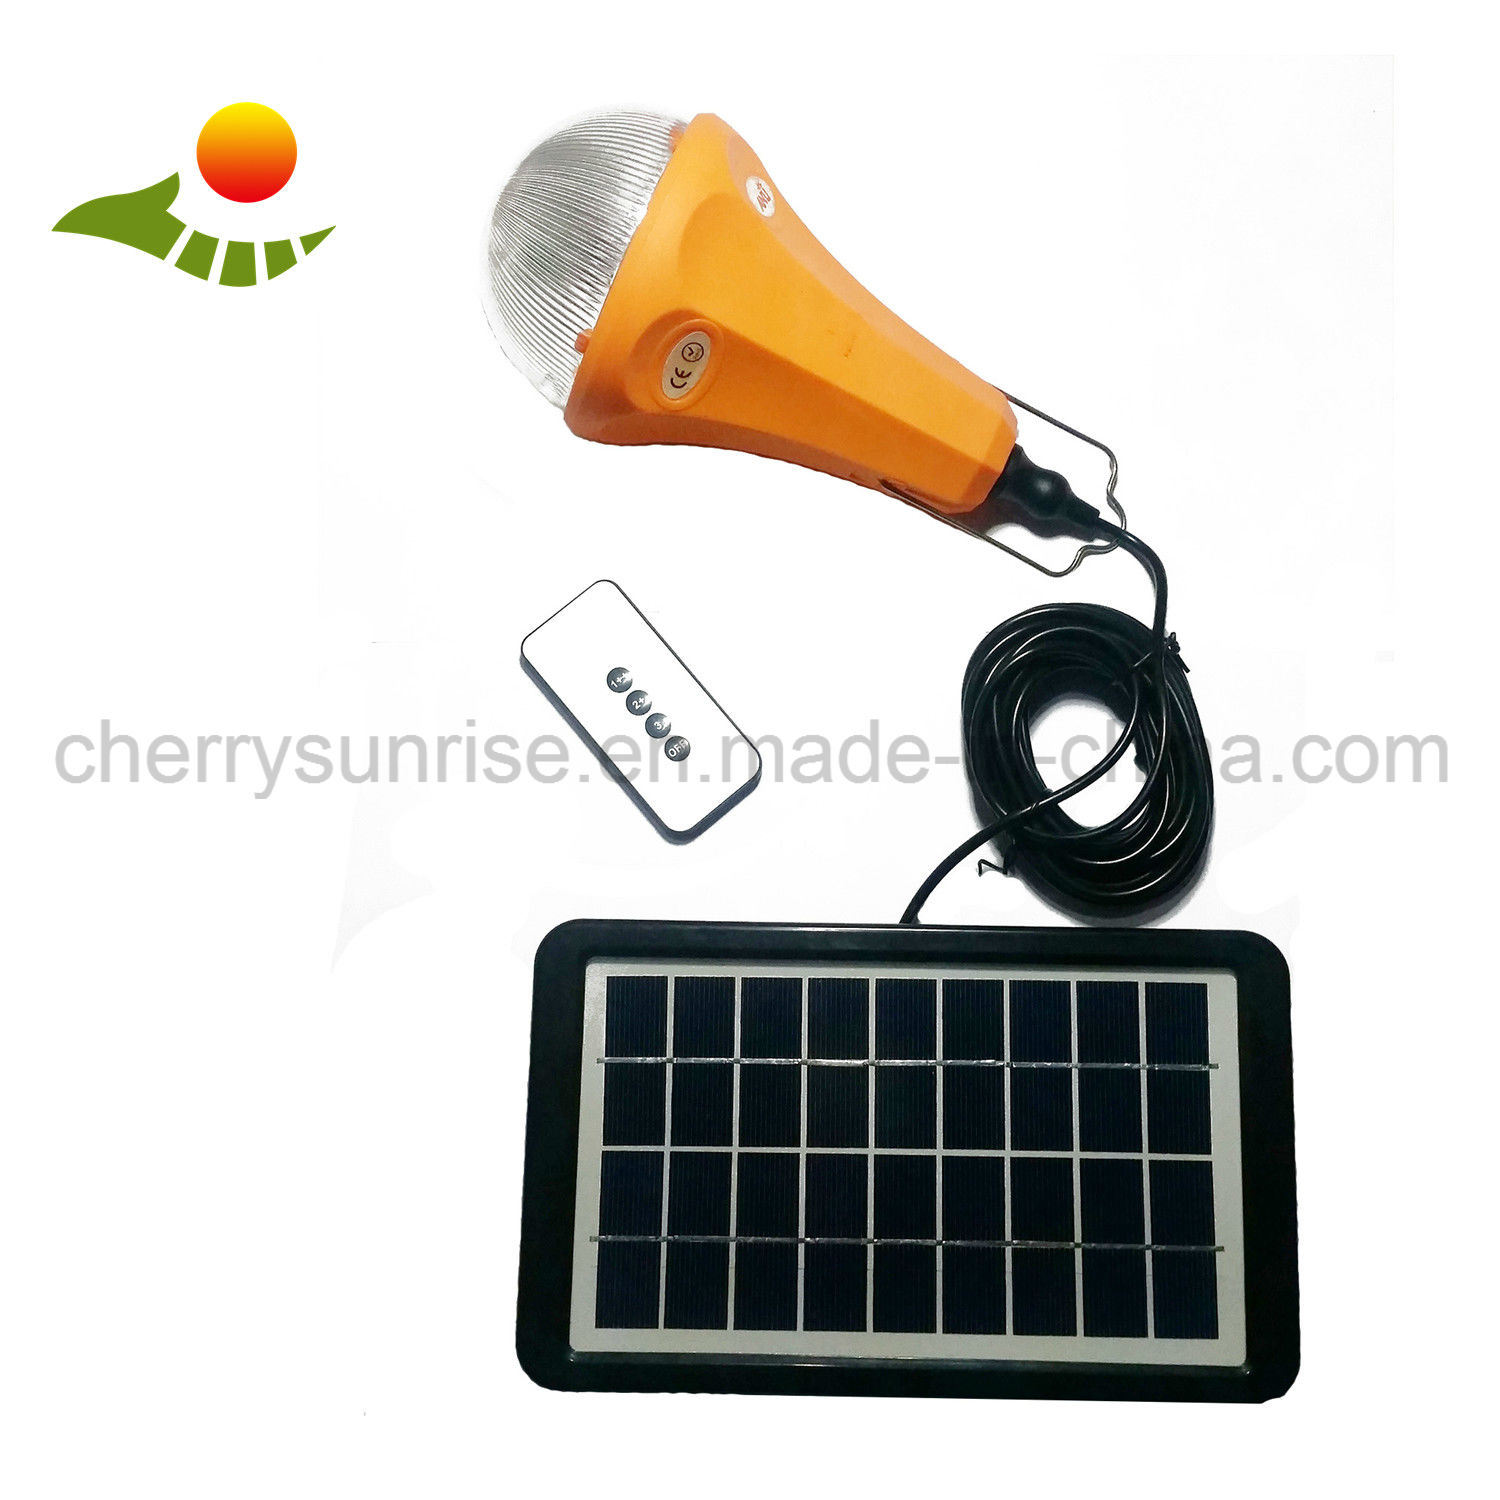 Cellphone Recharge 2600mAh Lithium Battery Inside Low Cheap Price Mini Solar Panel 6V